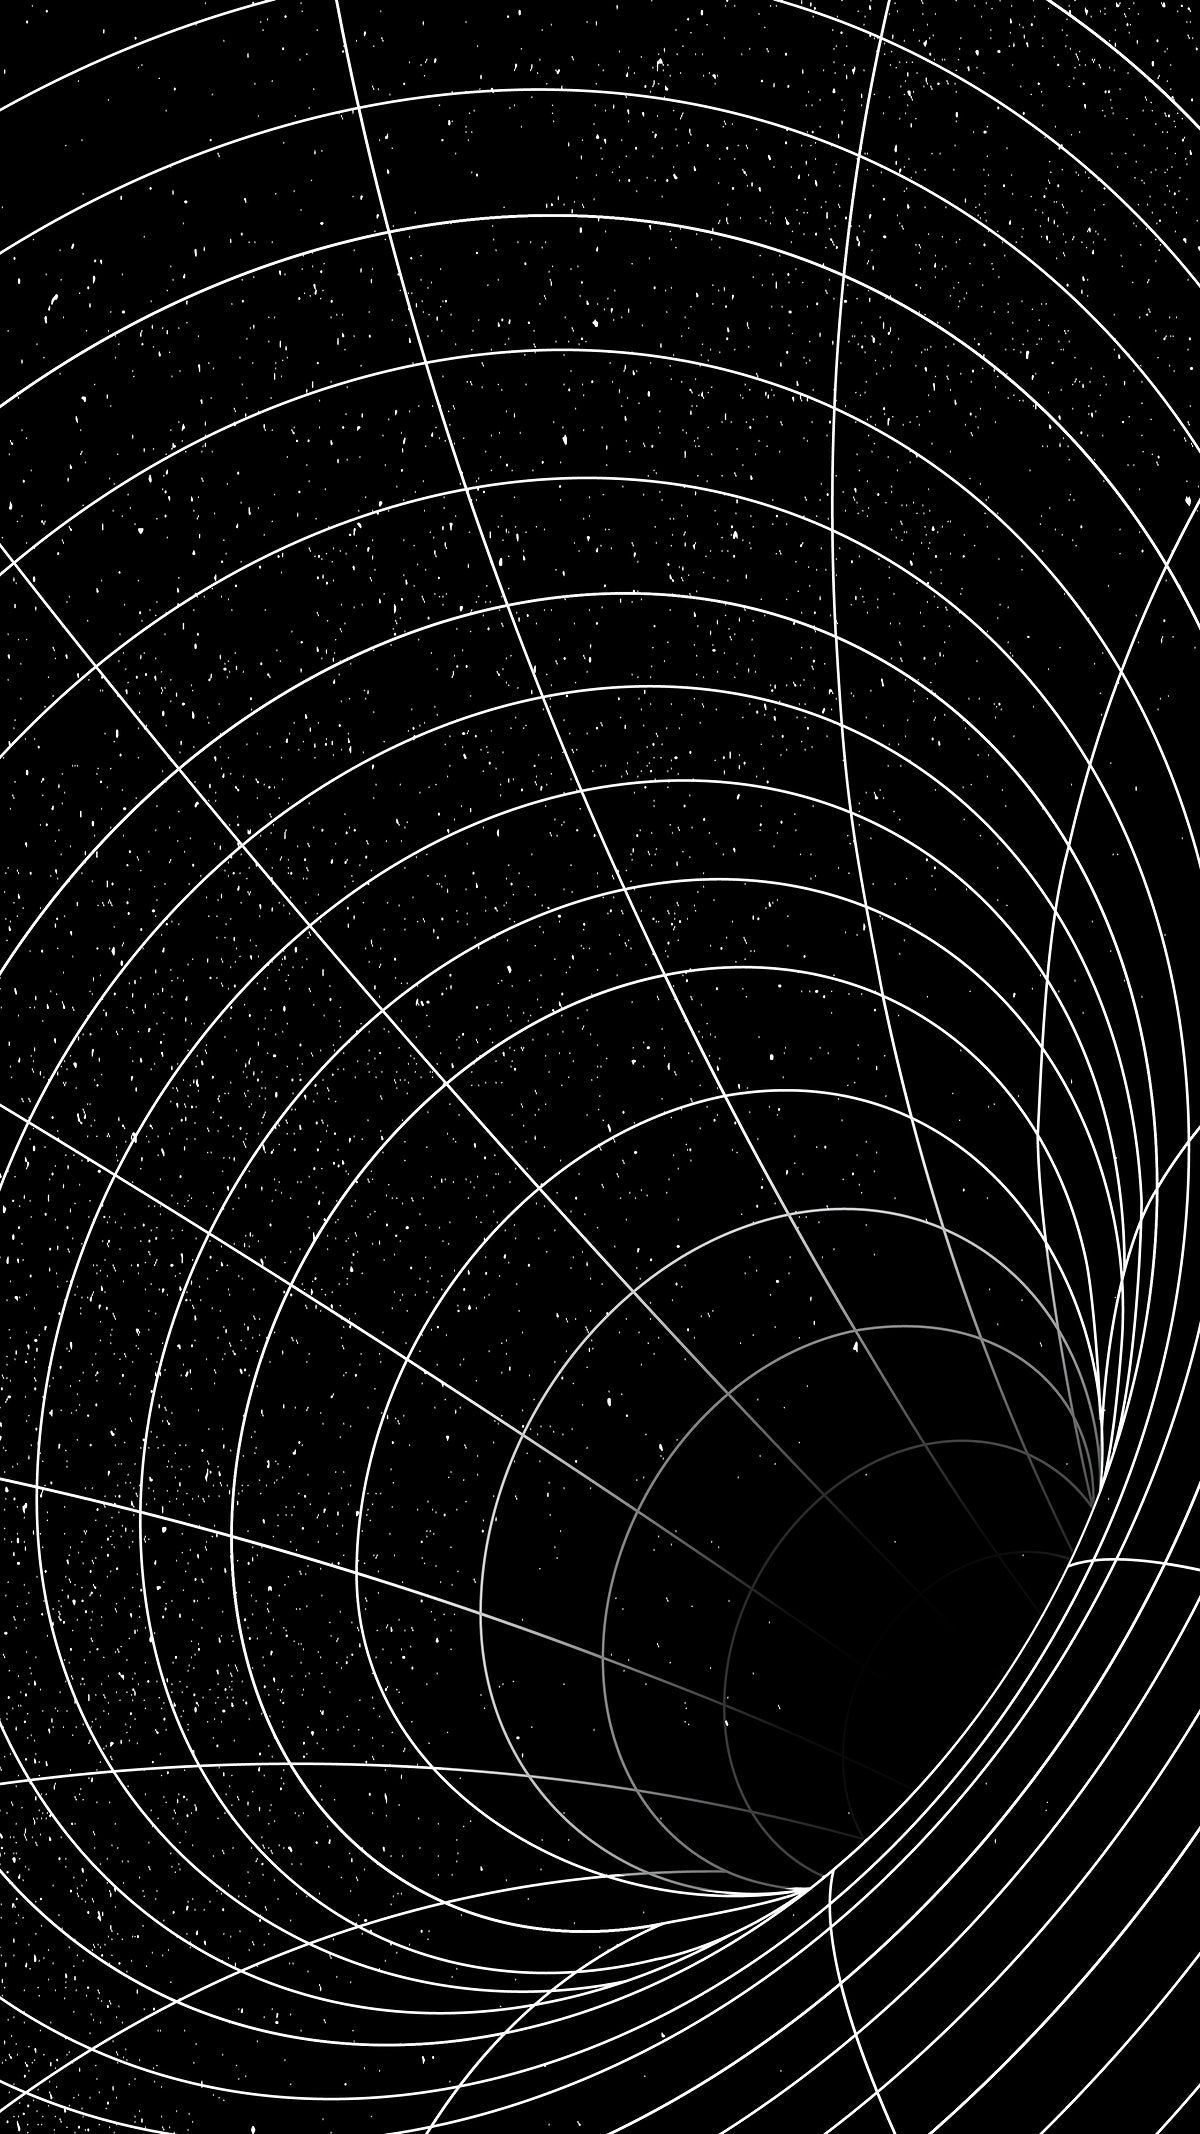 3d Grid Wormhole Illusion Design Element Vector Free Image By Rawpixel Com Aew Cover Art Design Illusions Grid Wallpaper